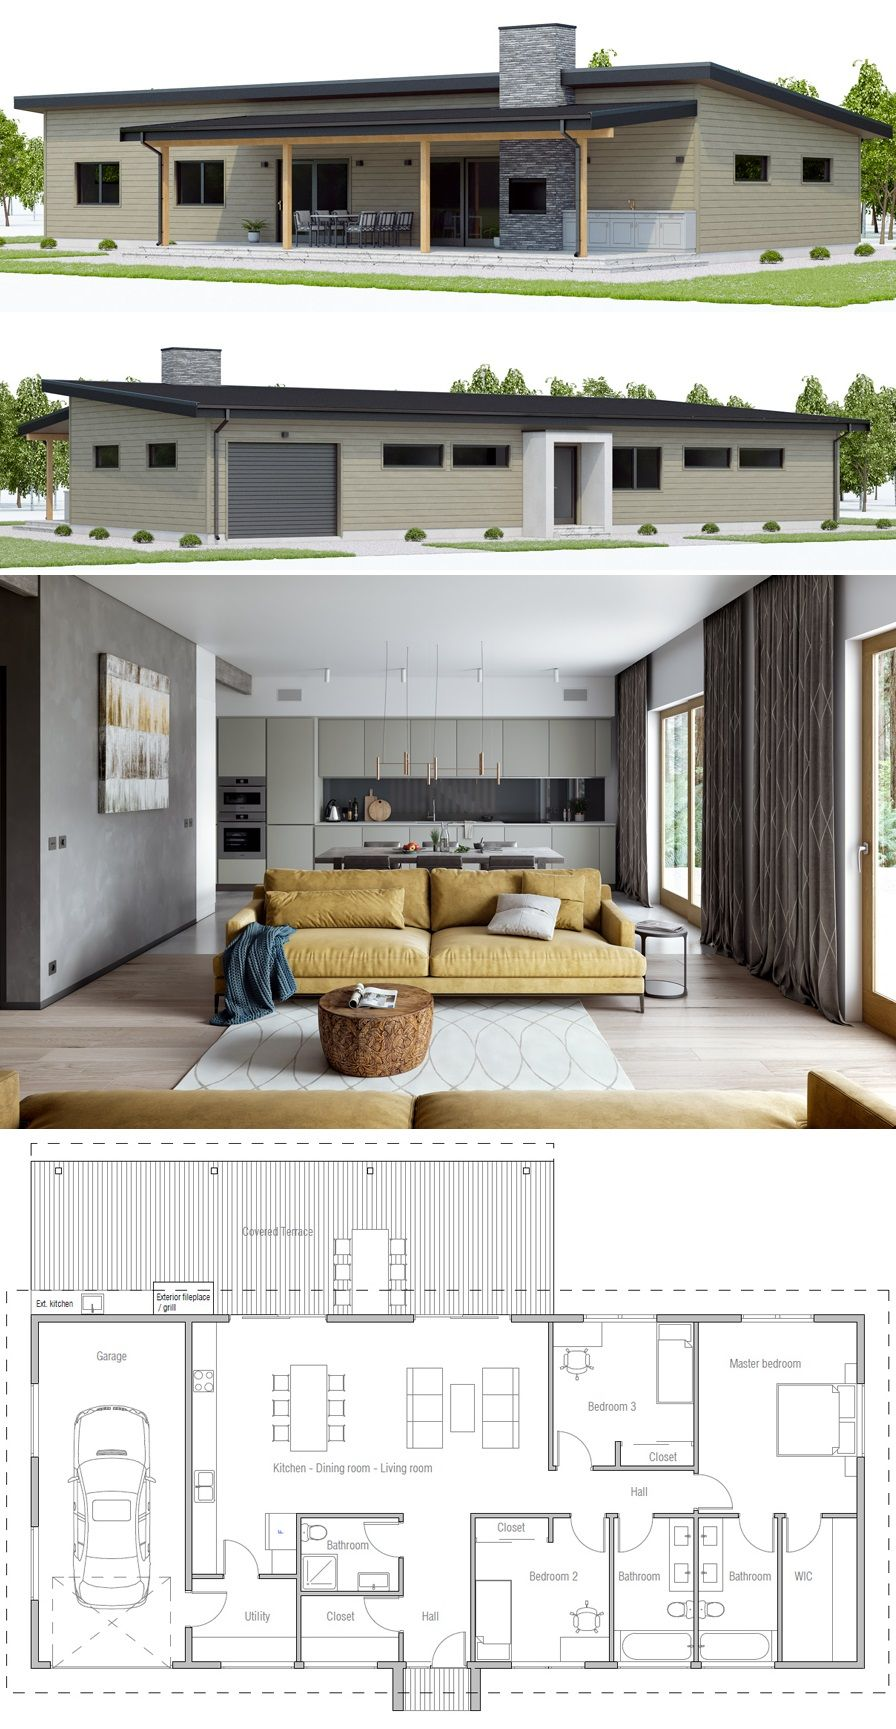 Affordable home plans house designs newhomes floorplans also rh pinterest